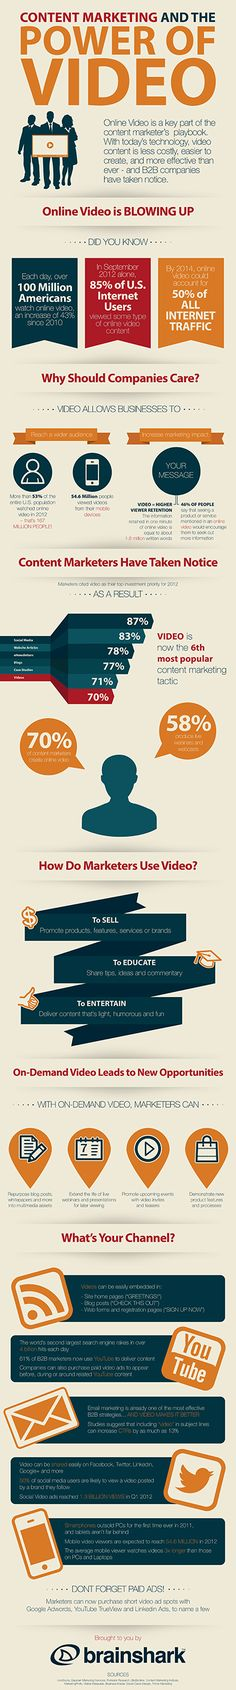 The Importance of Video in Social Media Marketing